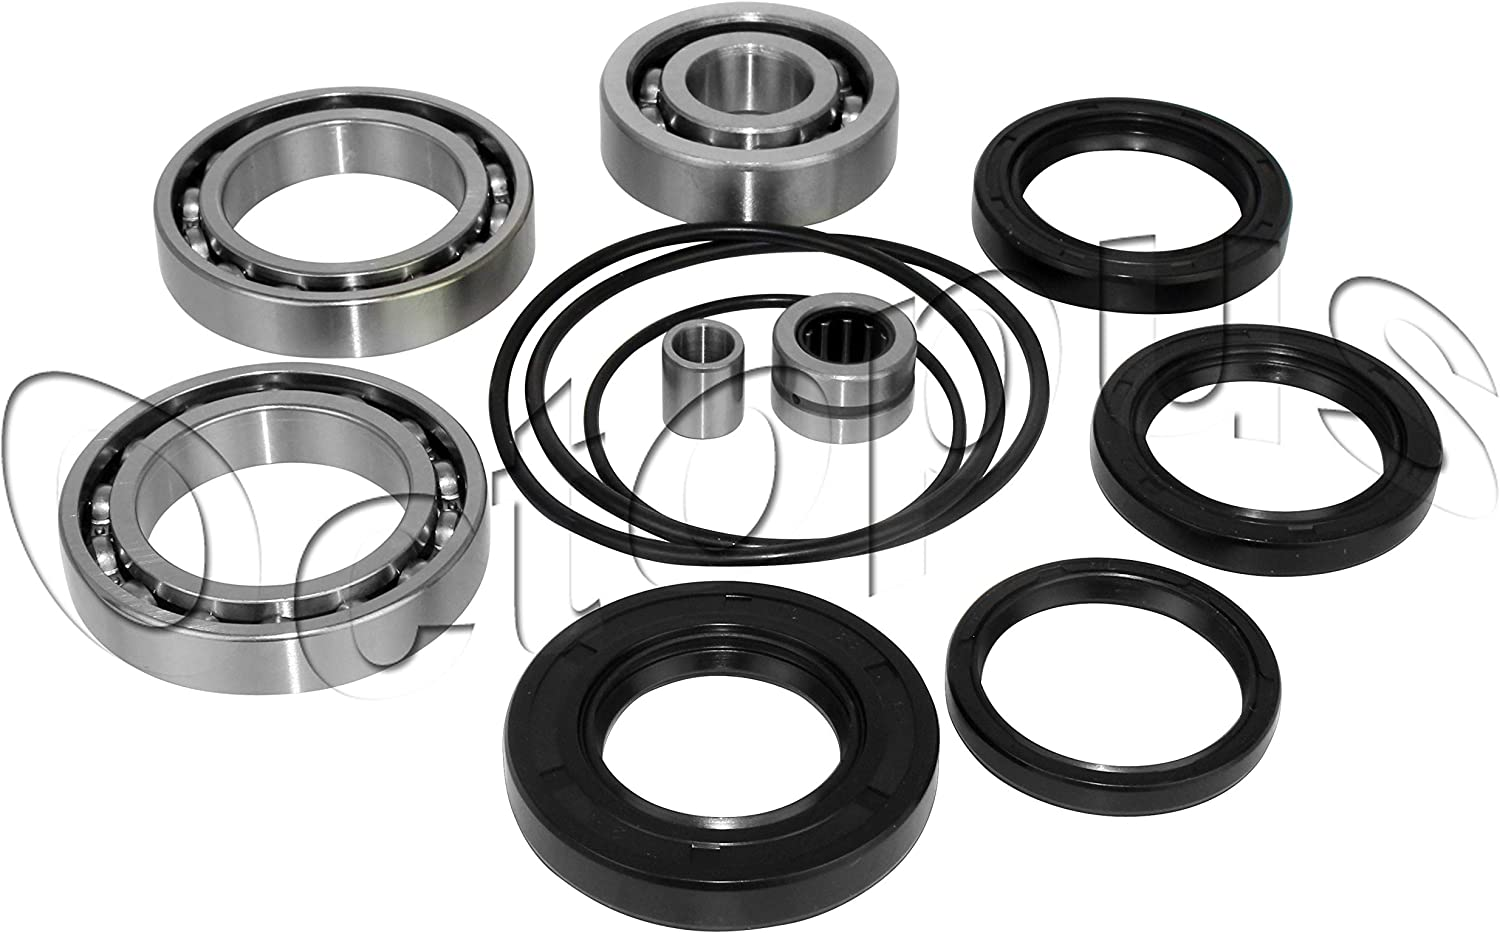 ALL BALLS All Bearing Kit for Front Wheels fit Honda TRX250 Fourtrax 1985-1987